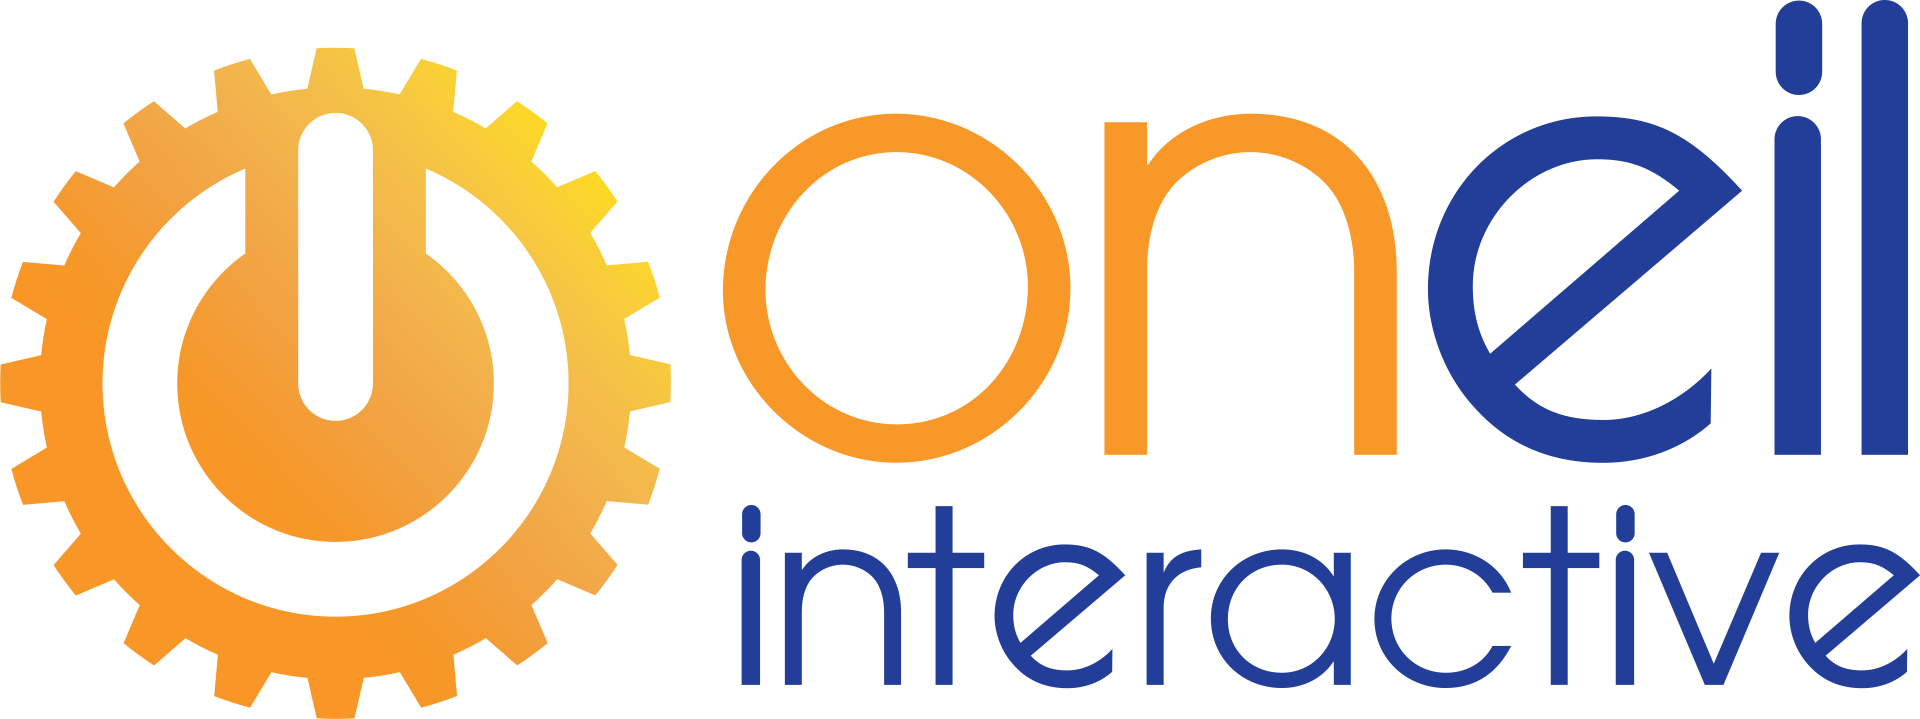 Python/Django Developer role from ONeil Interactive Inc. in Cockeysville, MD